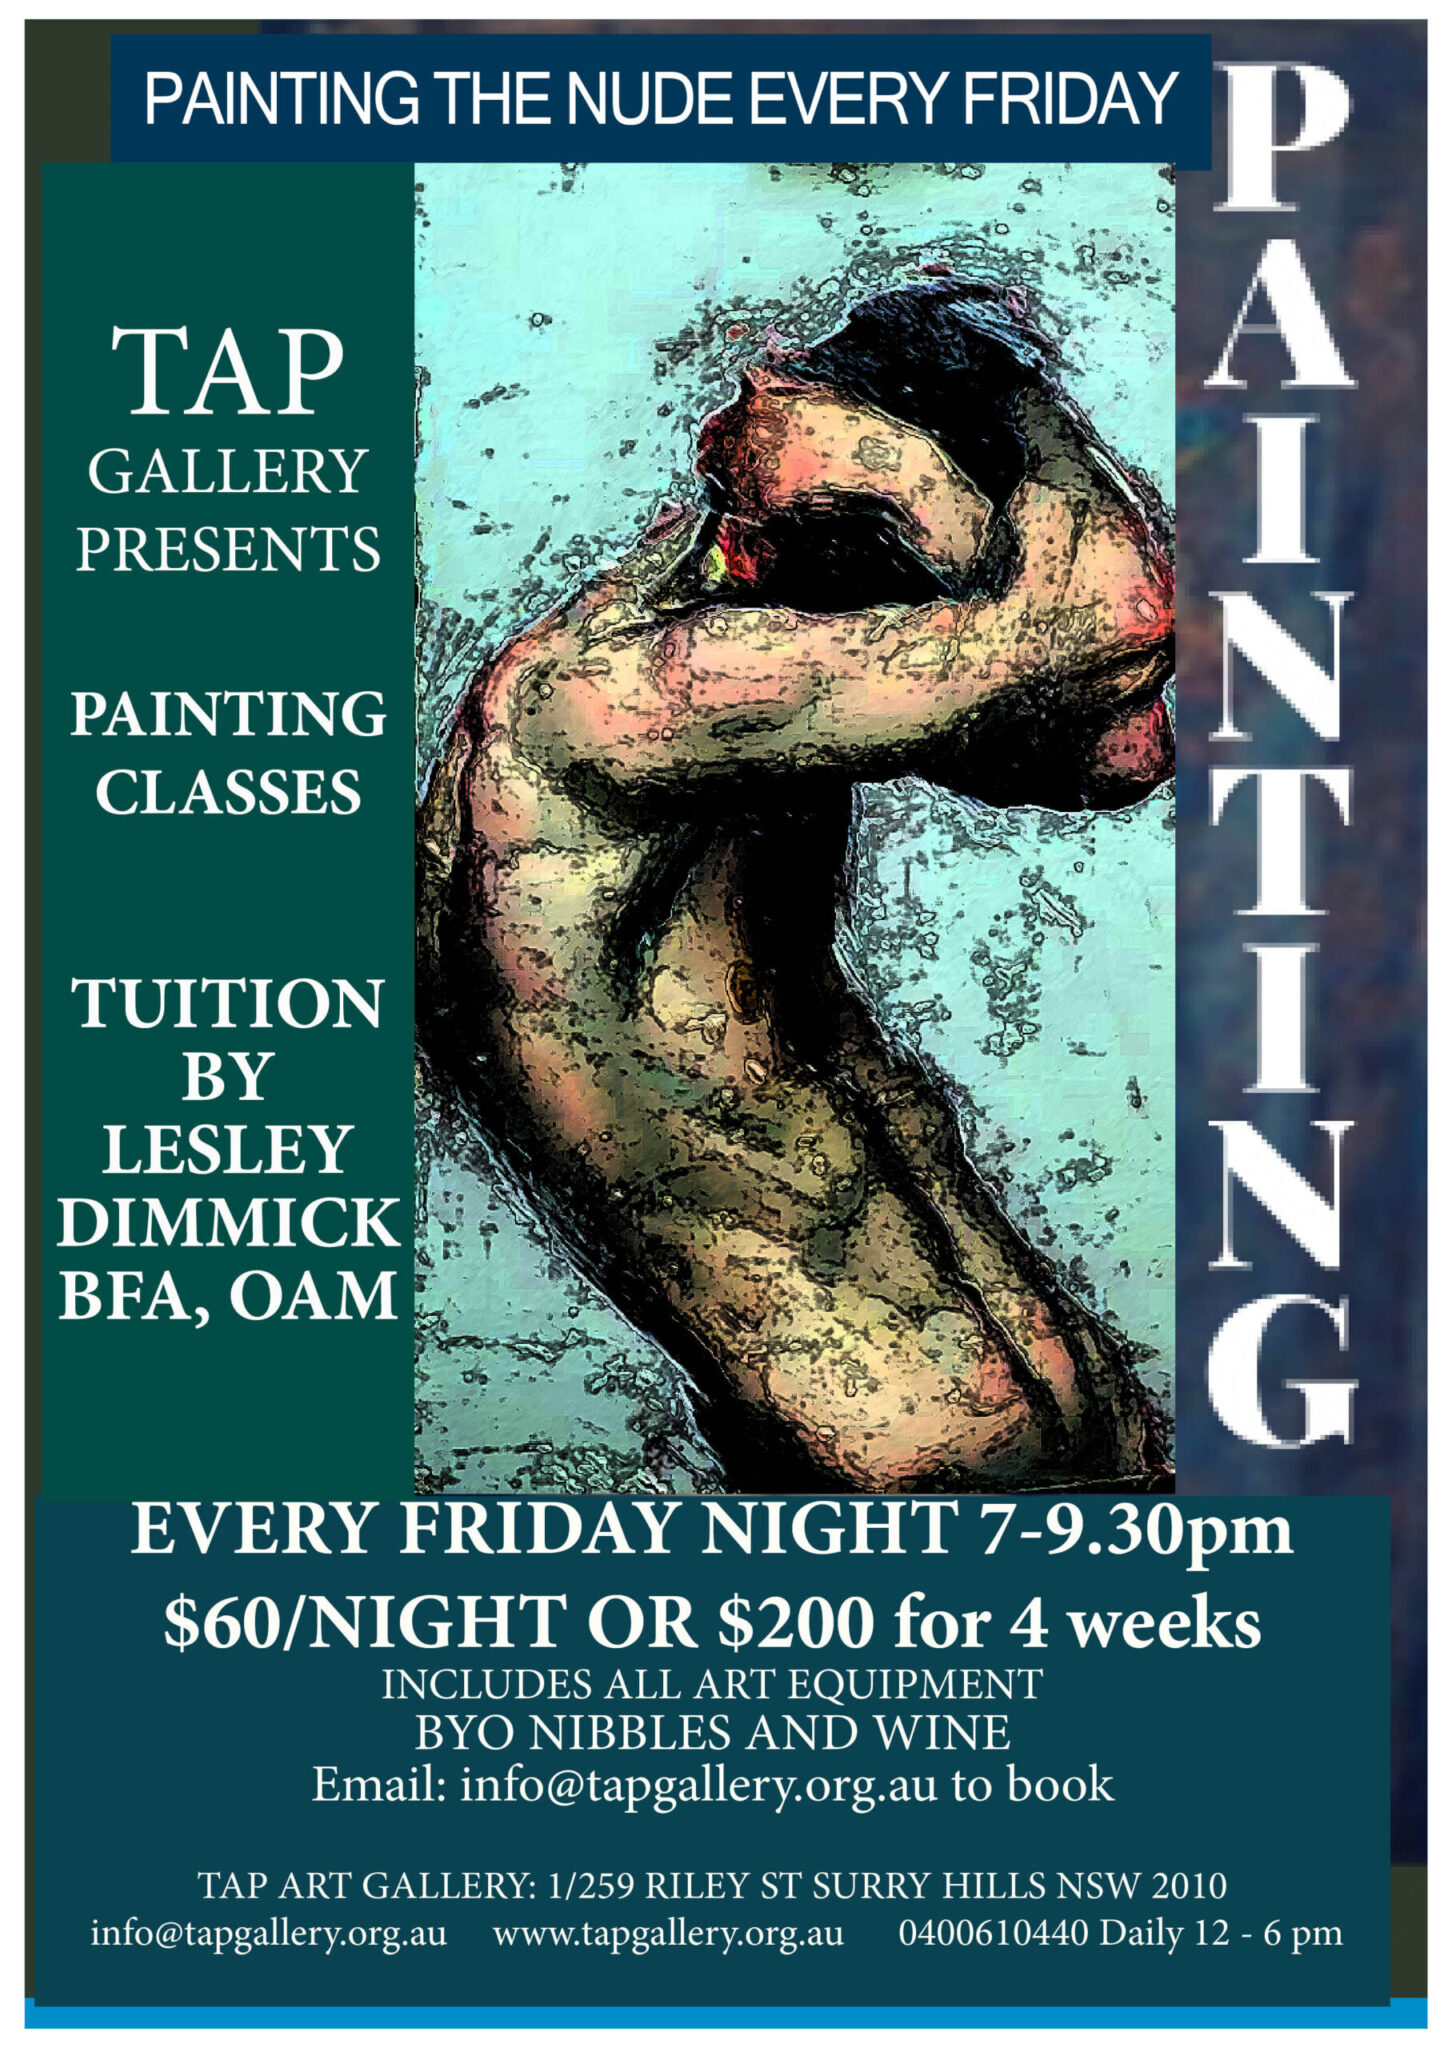 Tap Gallery Gift Vouchers - Painting the Nude